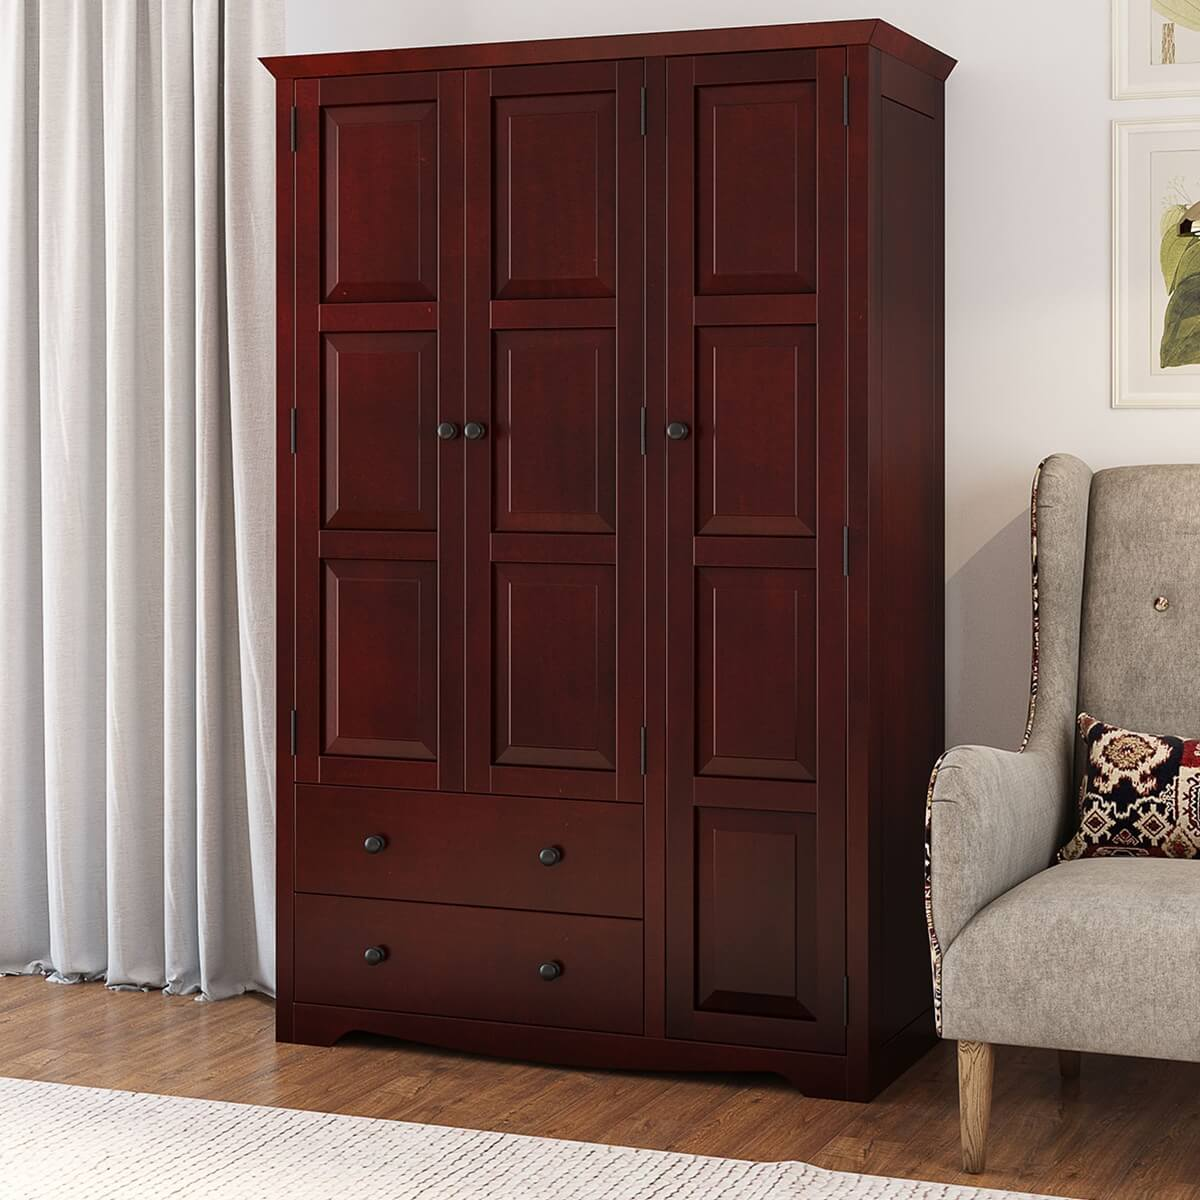 Dimension Armoire Dakota Rustic Solid Mahogany Wood Large Wardrobe Armoire With Drawers